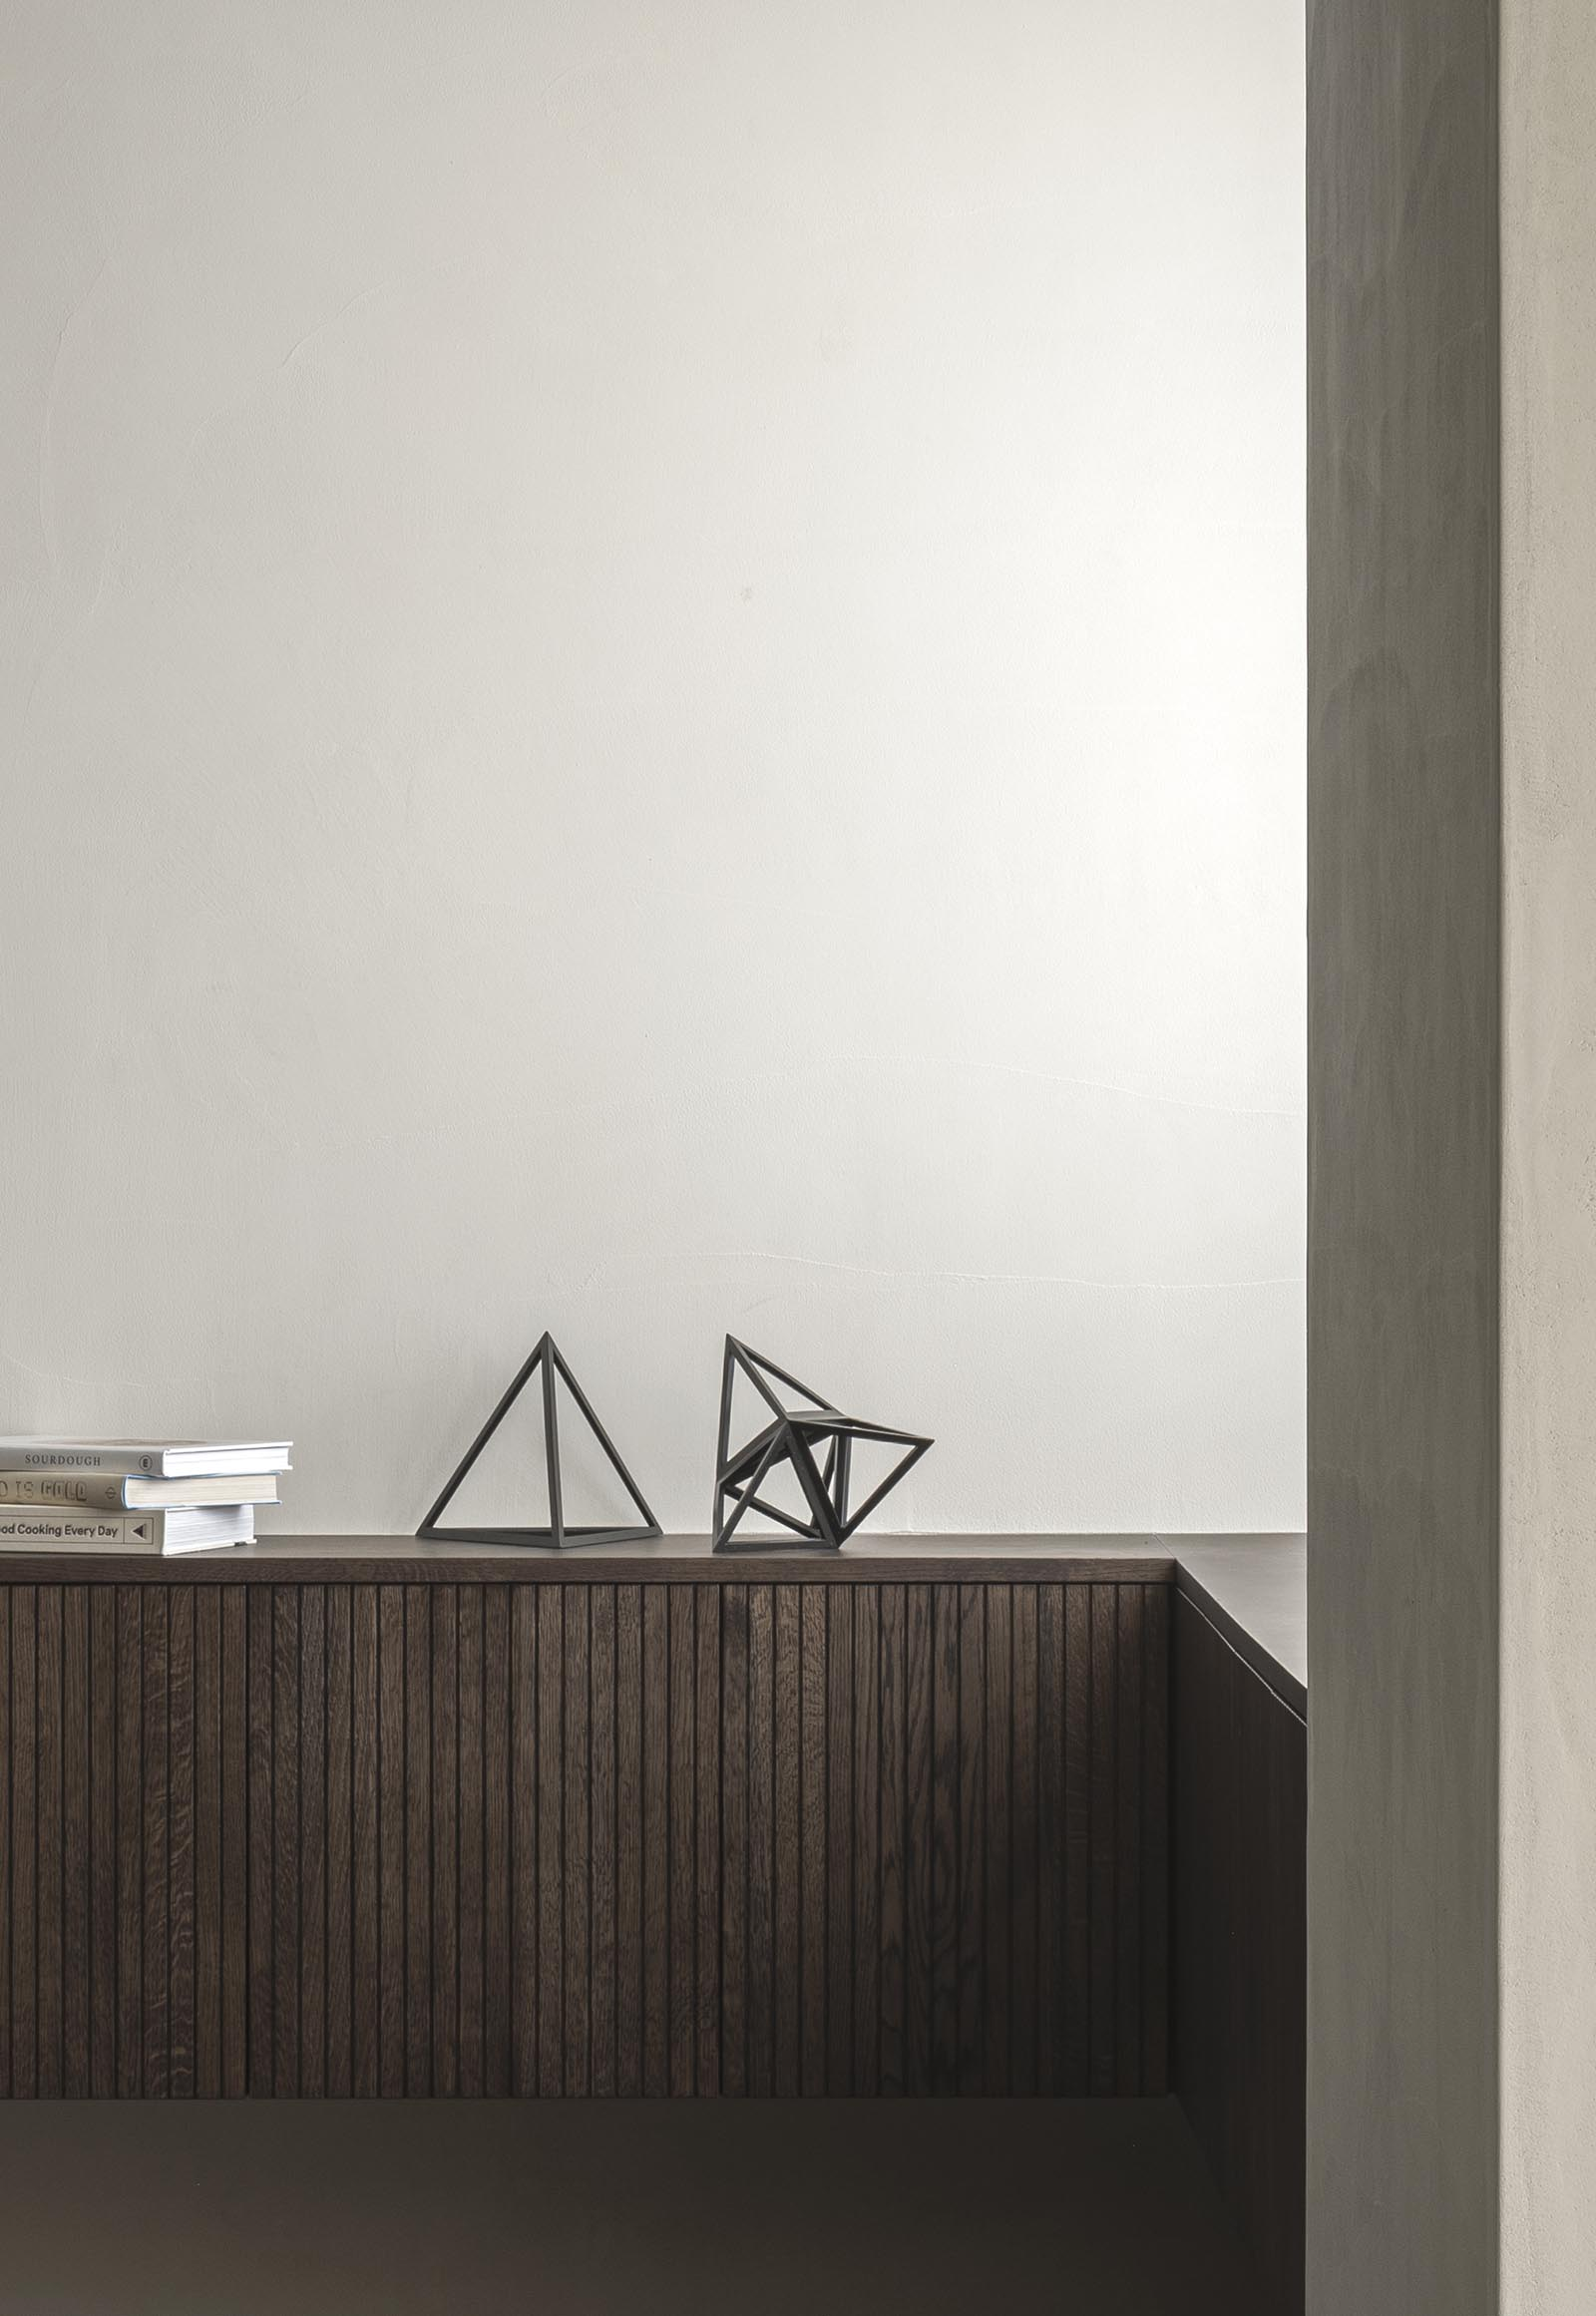 Bespoke wooden cabinetry in dark, earthy tones from Japandi design collaboration Karimoku Case Study | These Four Walls blog